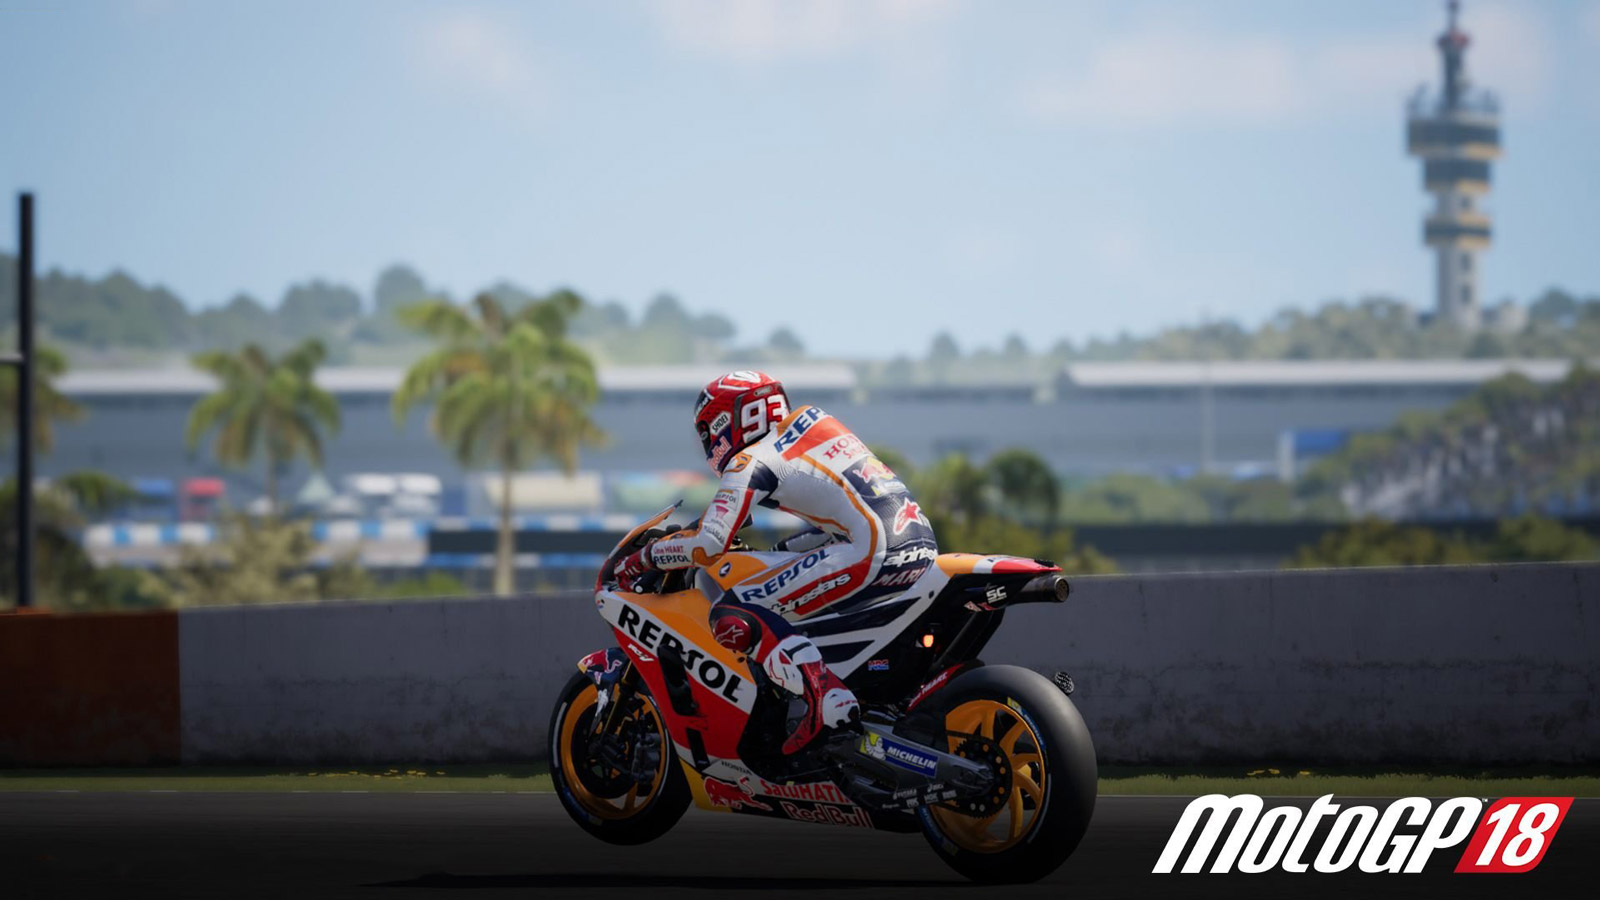 Free MotoGP 18 Wallpaper in 1600x900